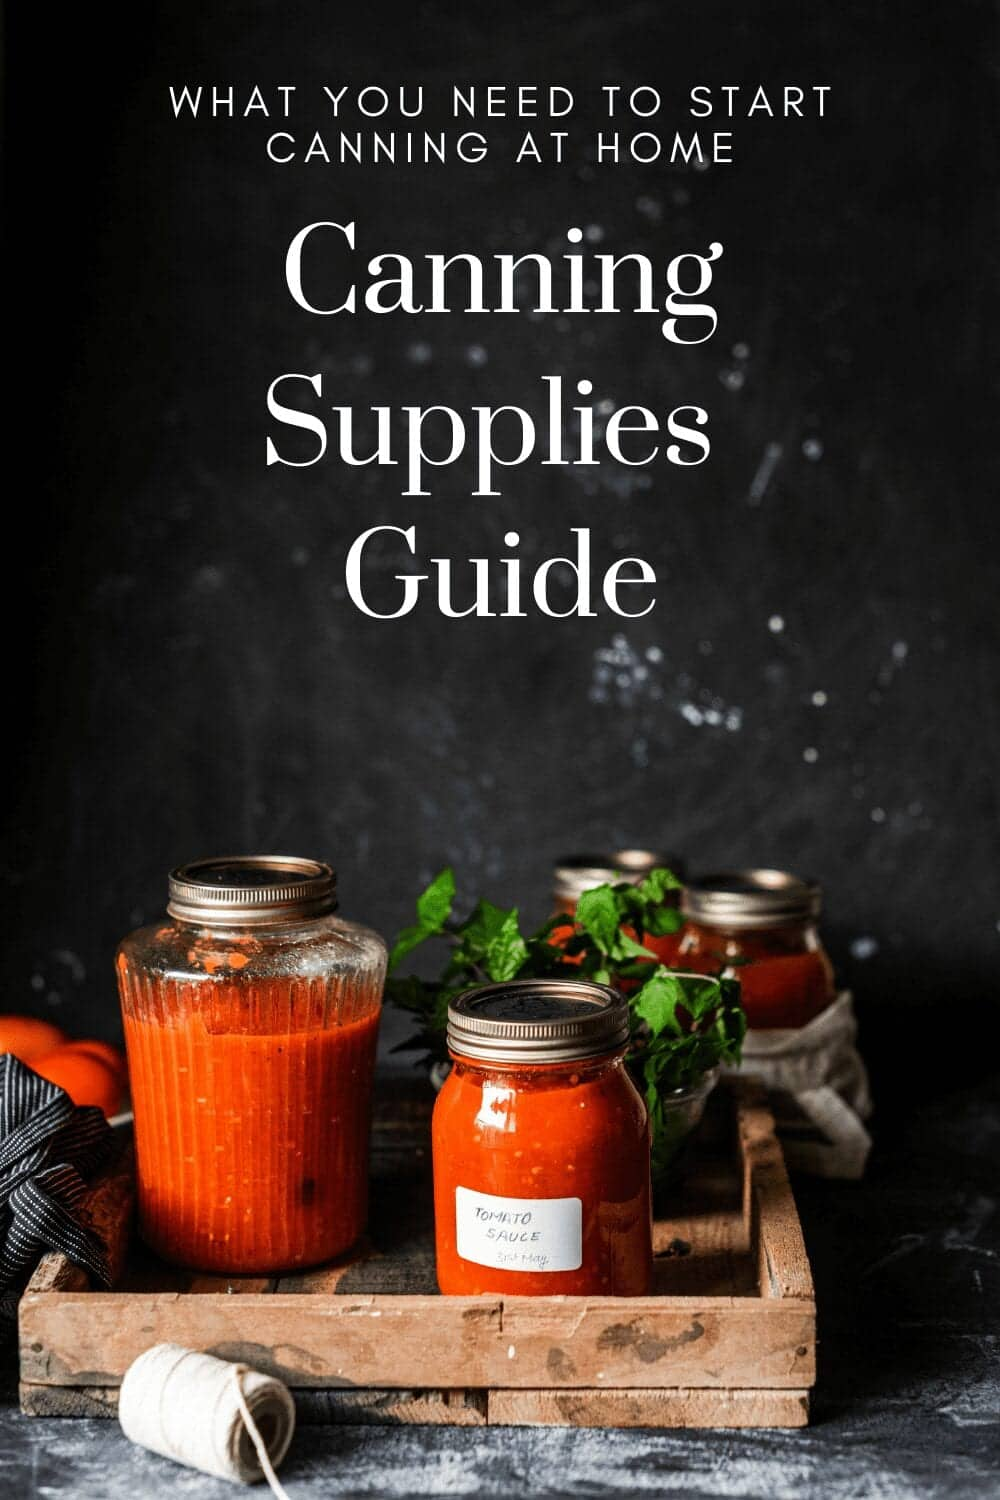 canning supplies guide cover to help learn how to pressure can